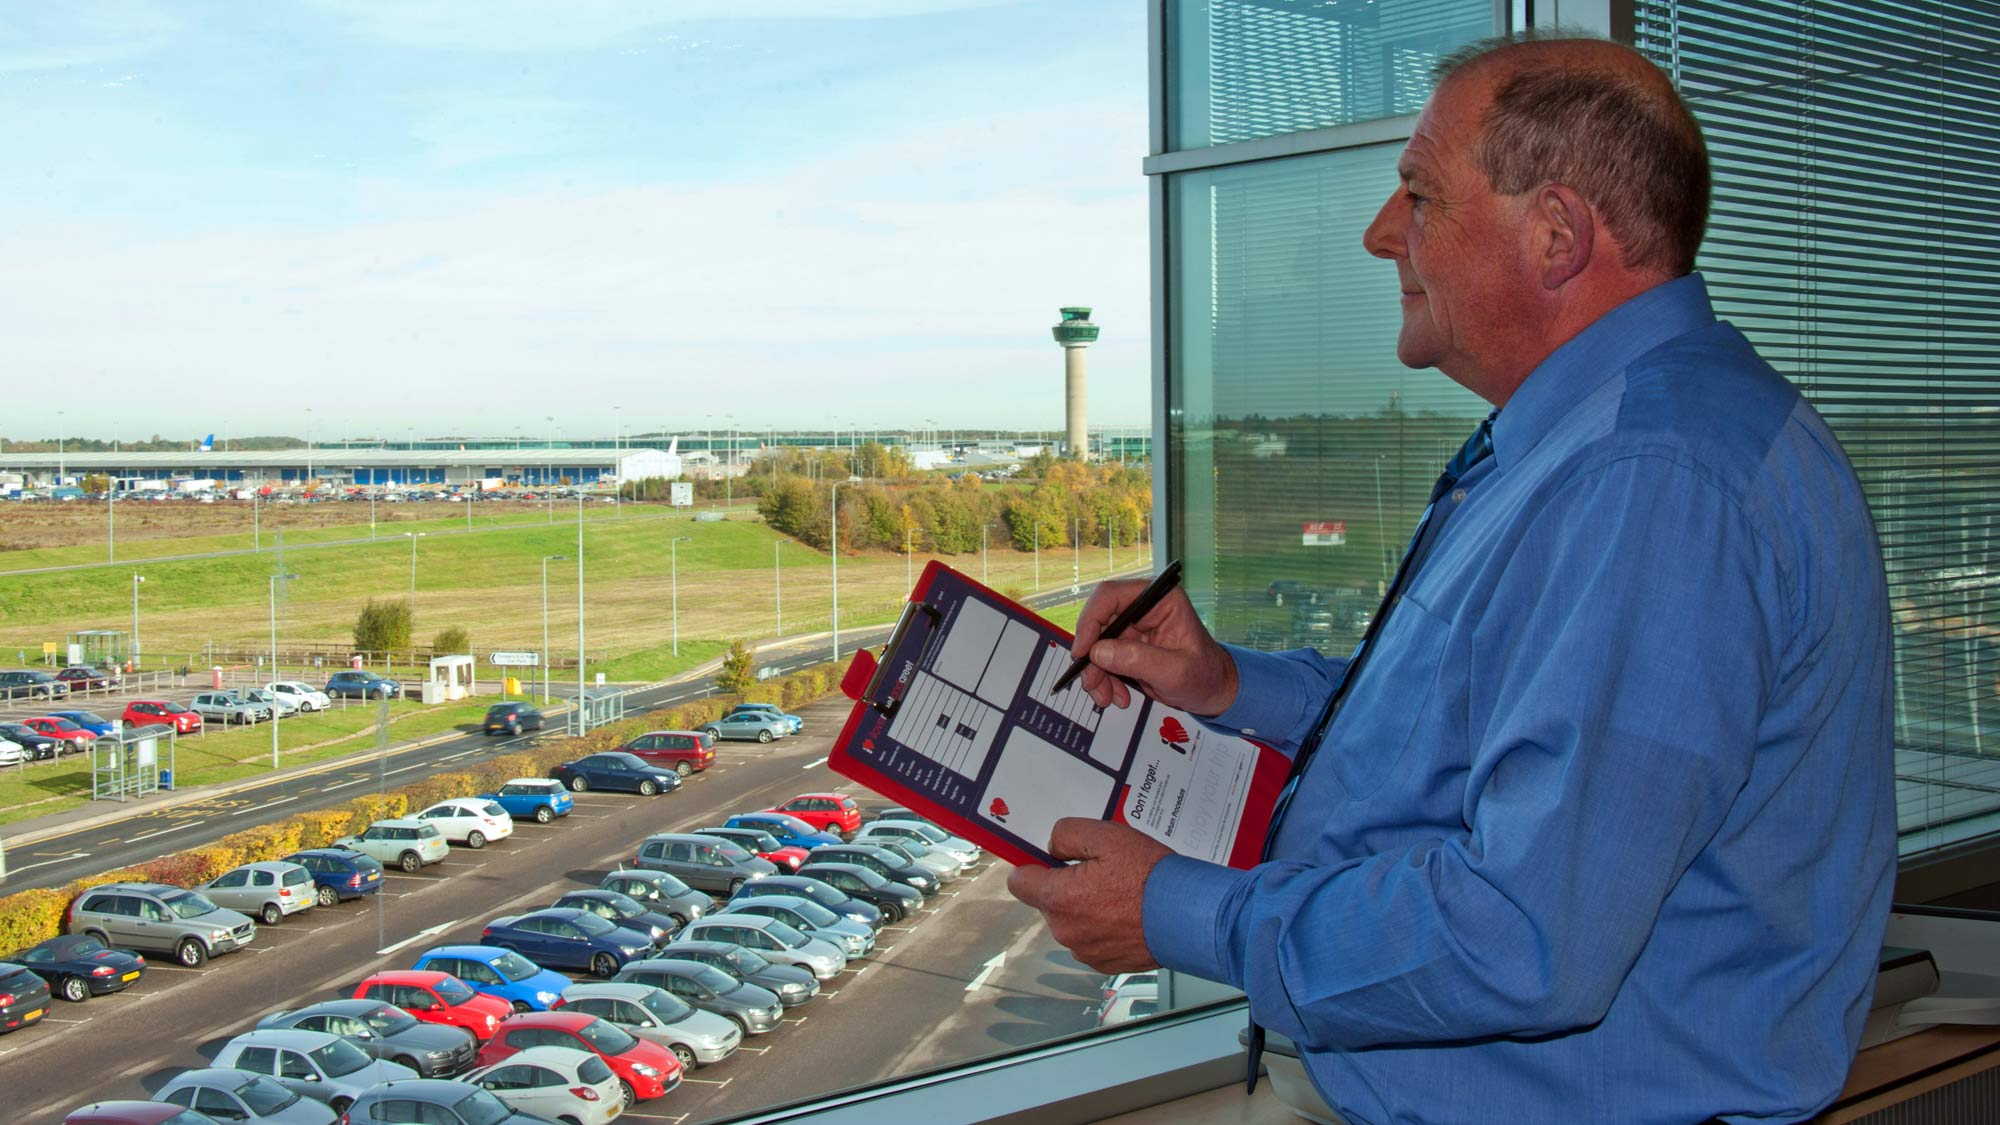 Jim betchley former stansted manager i love jim has been involved with airport parking since 2008 when he led the hotel parking team at gatwick for meteor meet and greet he established great working m4hsunfo